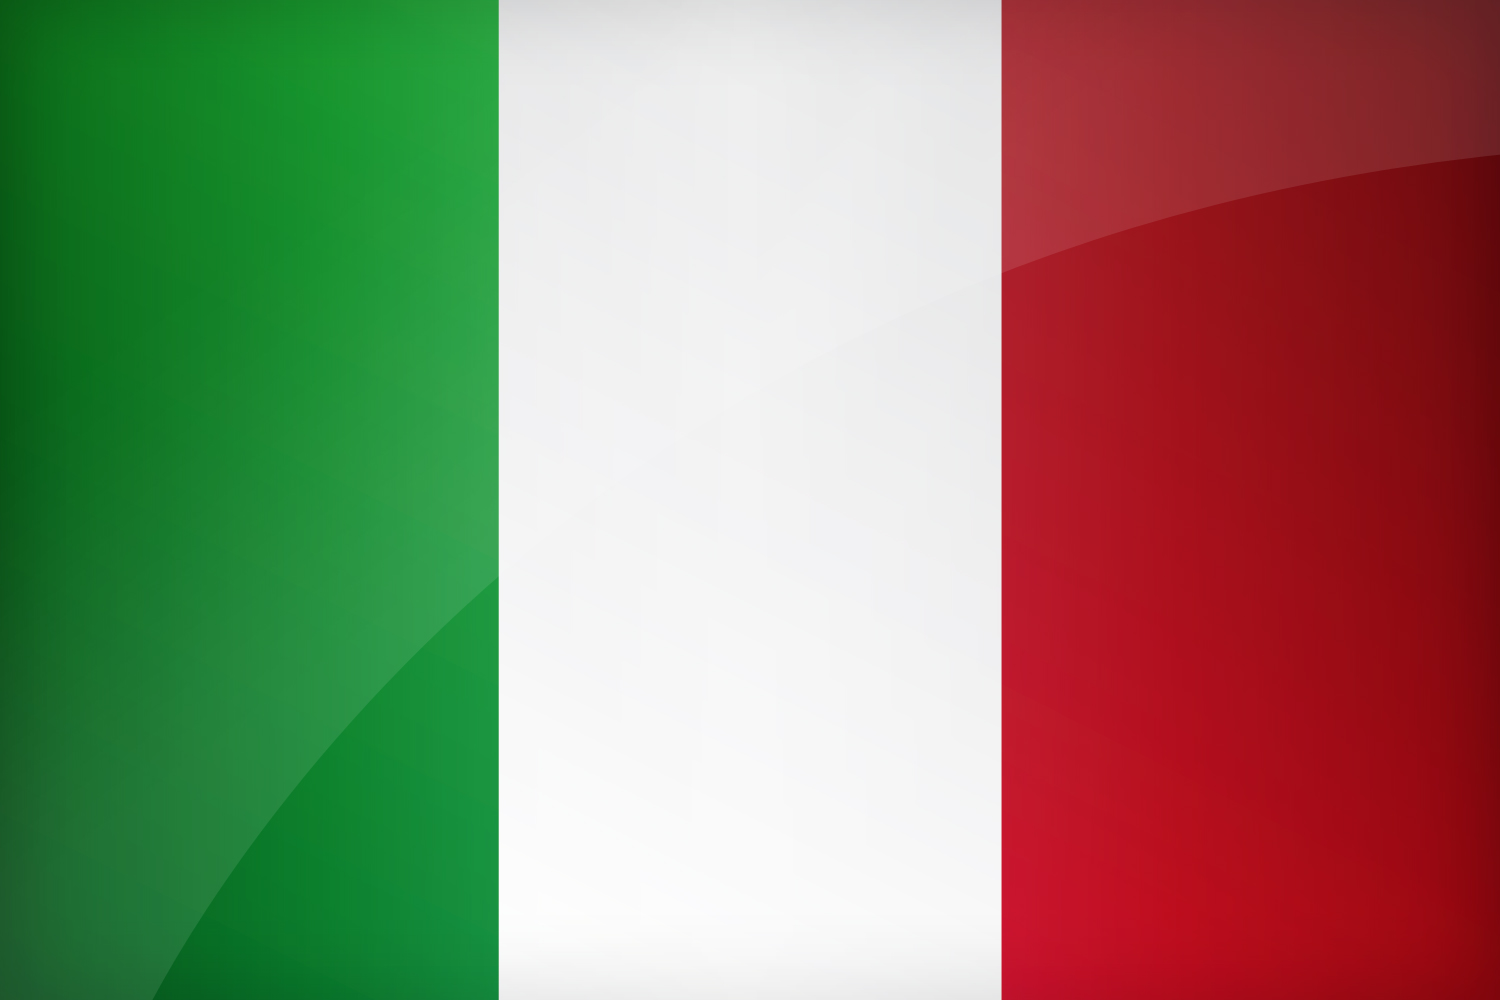 Italy Flag colors Italy Flag meaning history